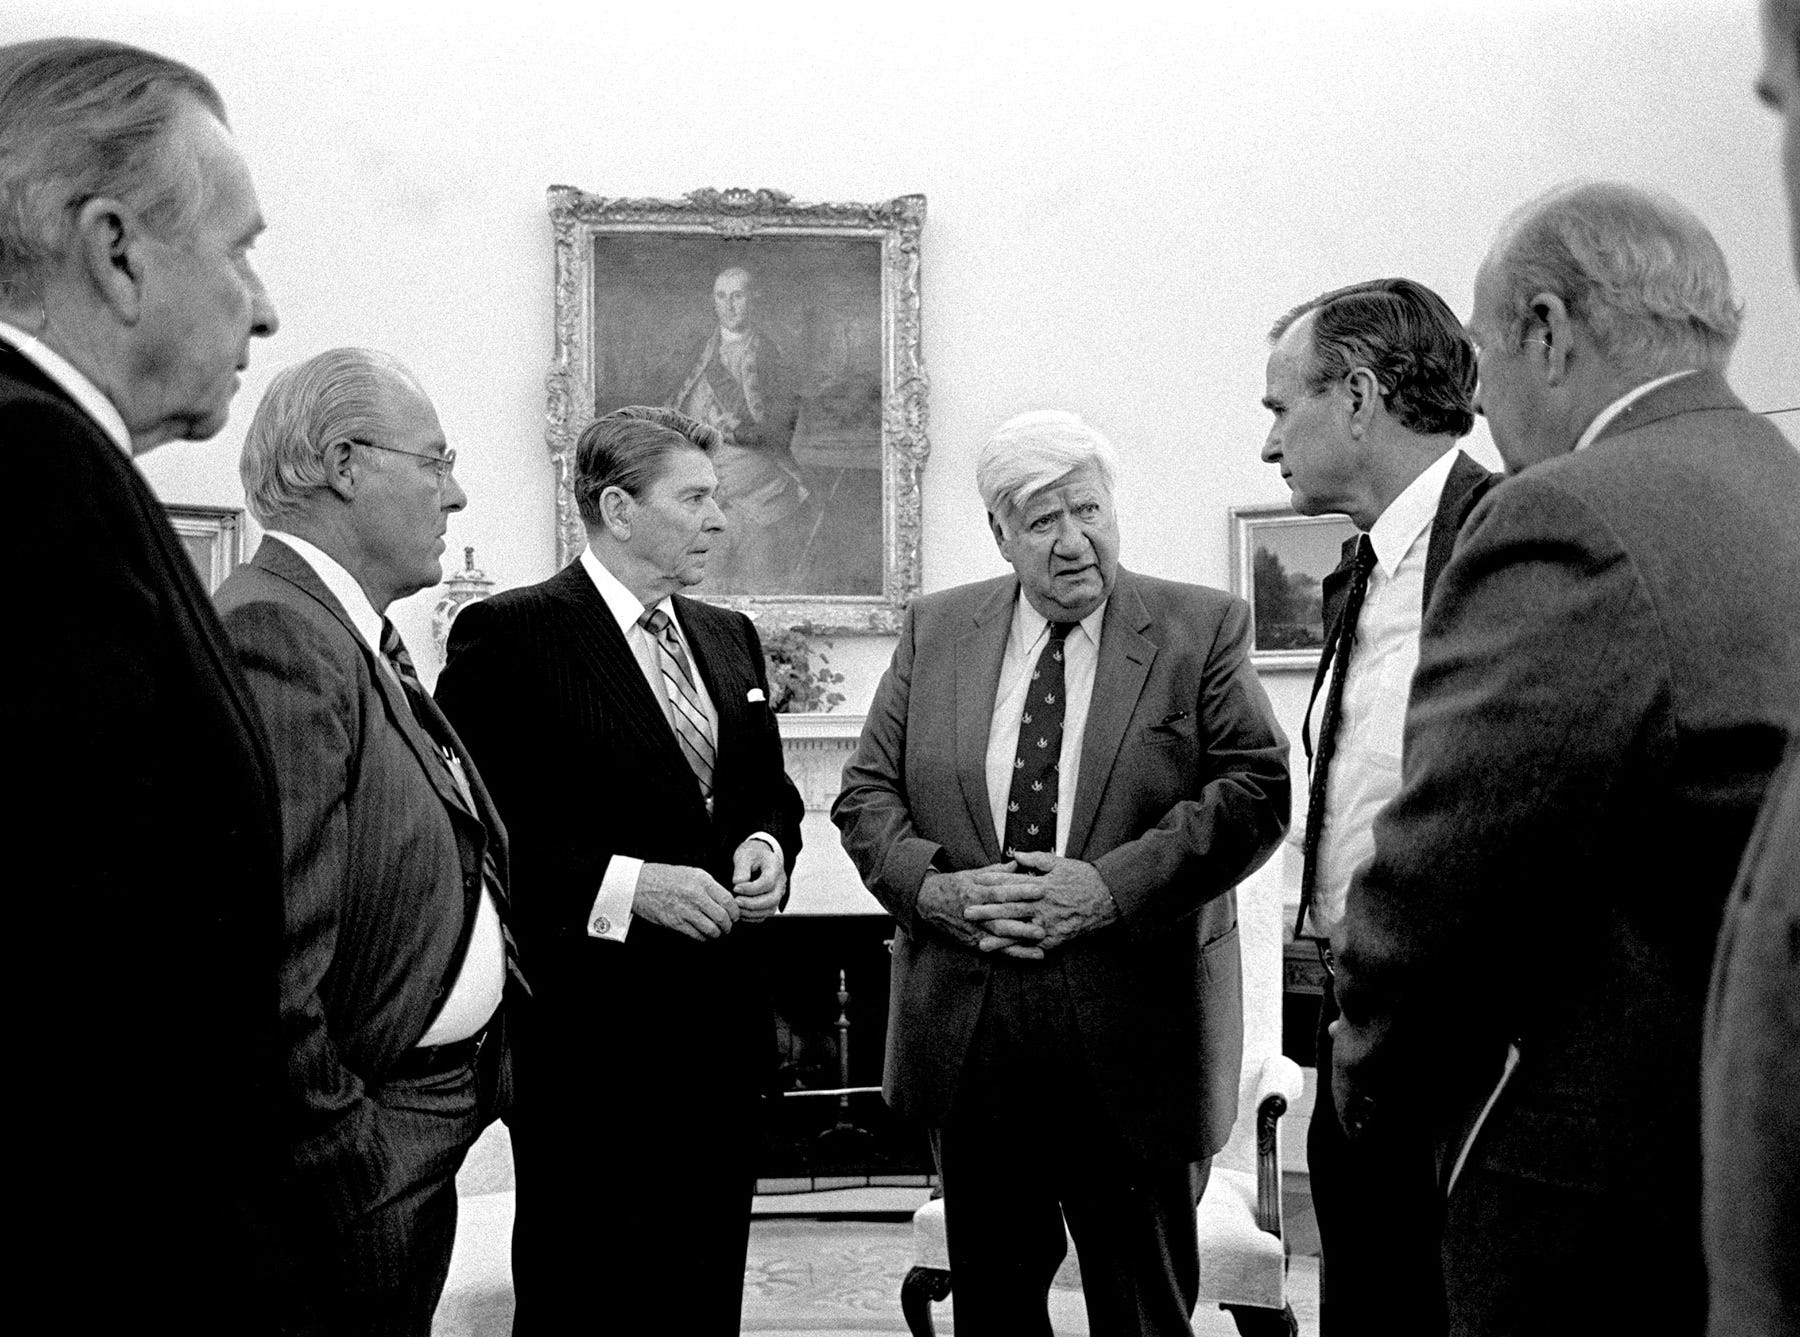 President Reagan, third from left,talks with Speaker of the House Tip O'Neil in the Oval Office along with chief of staff Don Regan, left, Rep. Robert Michael, Vice-President George H. W. Bush, and Secretary of State George Schultz, April, 1985.